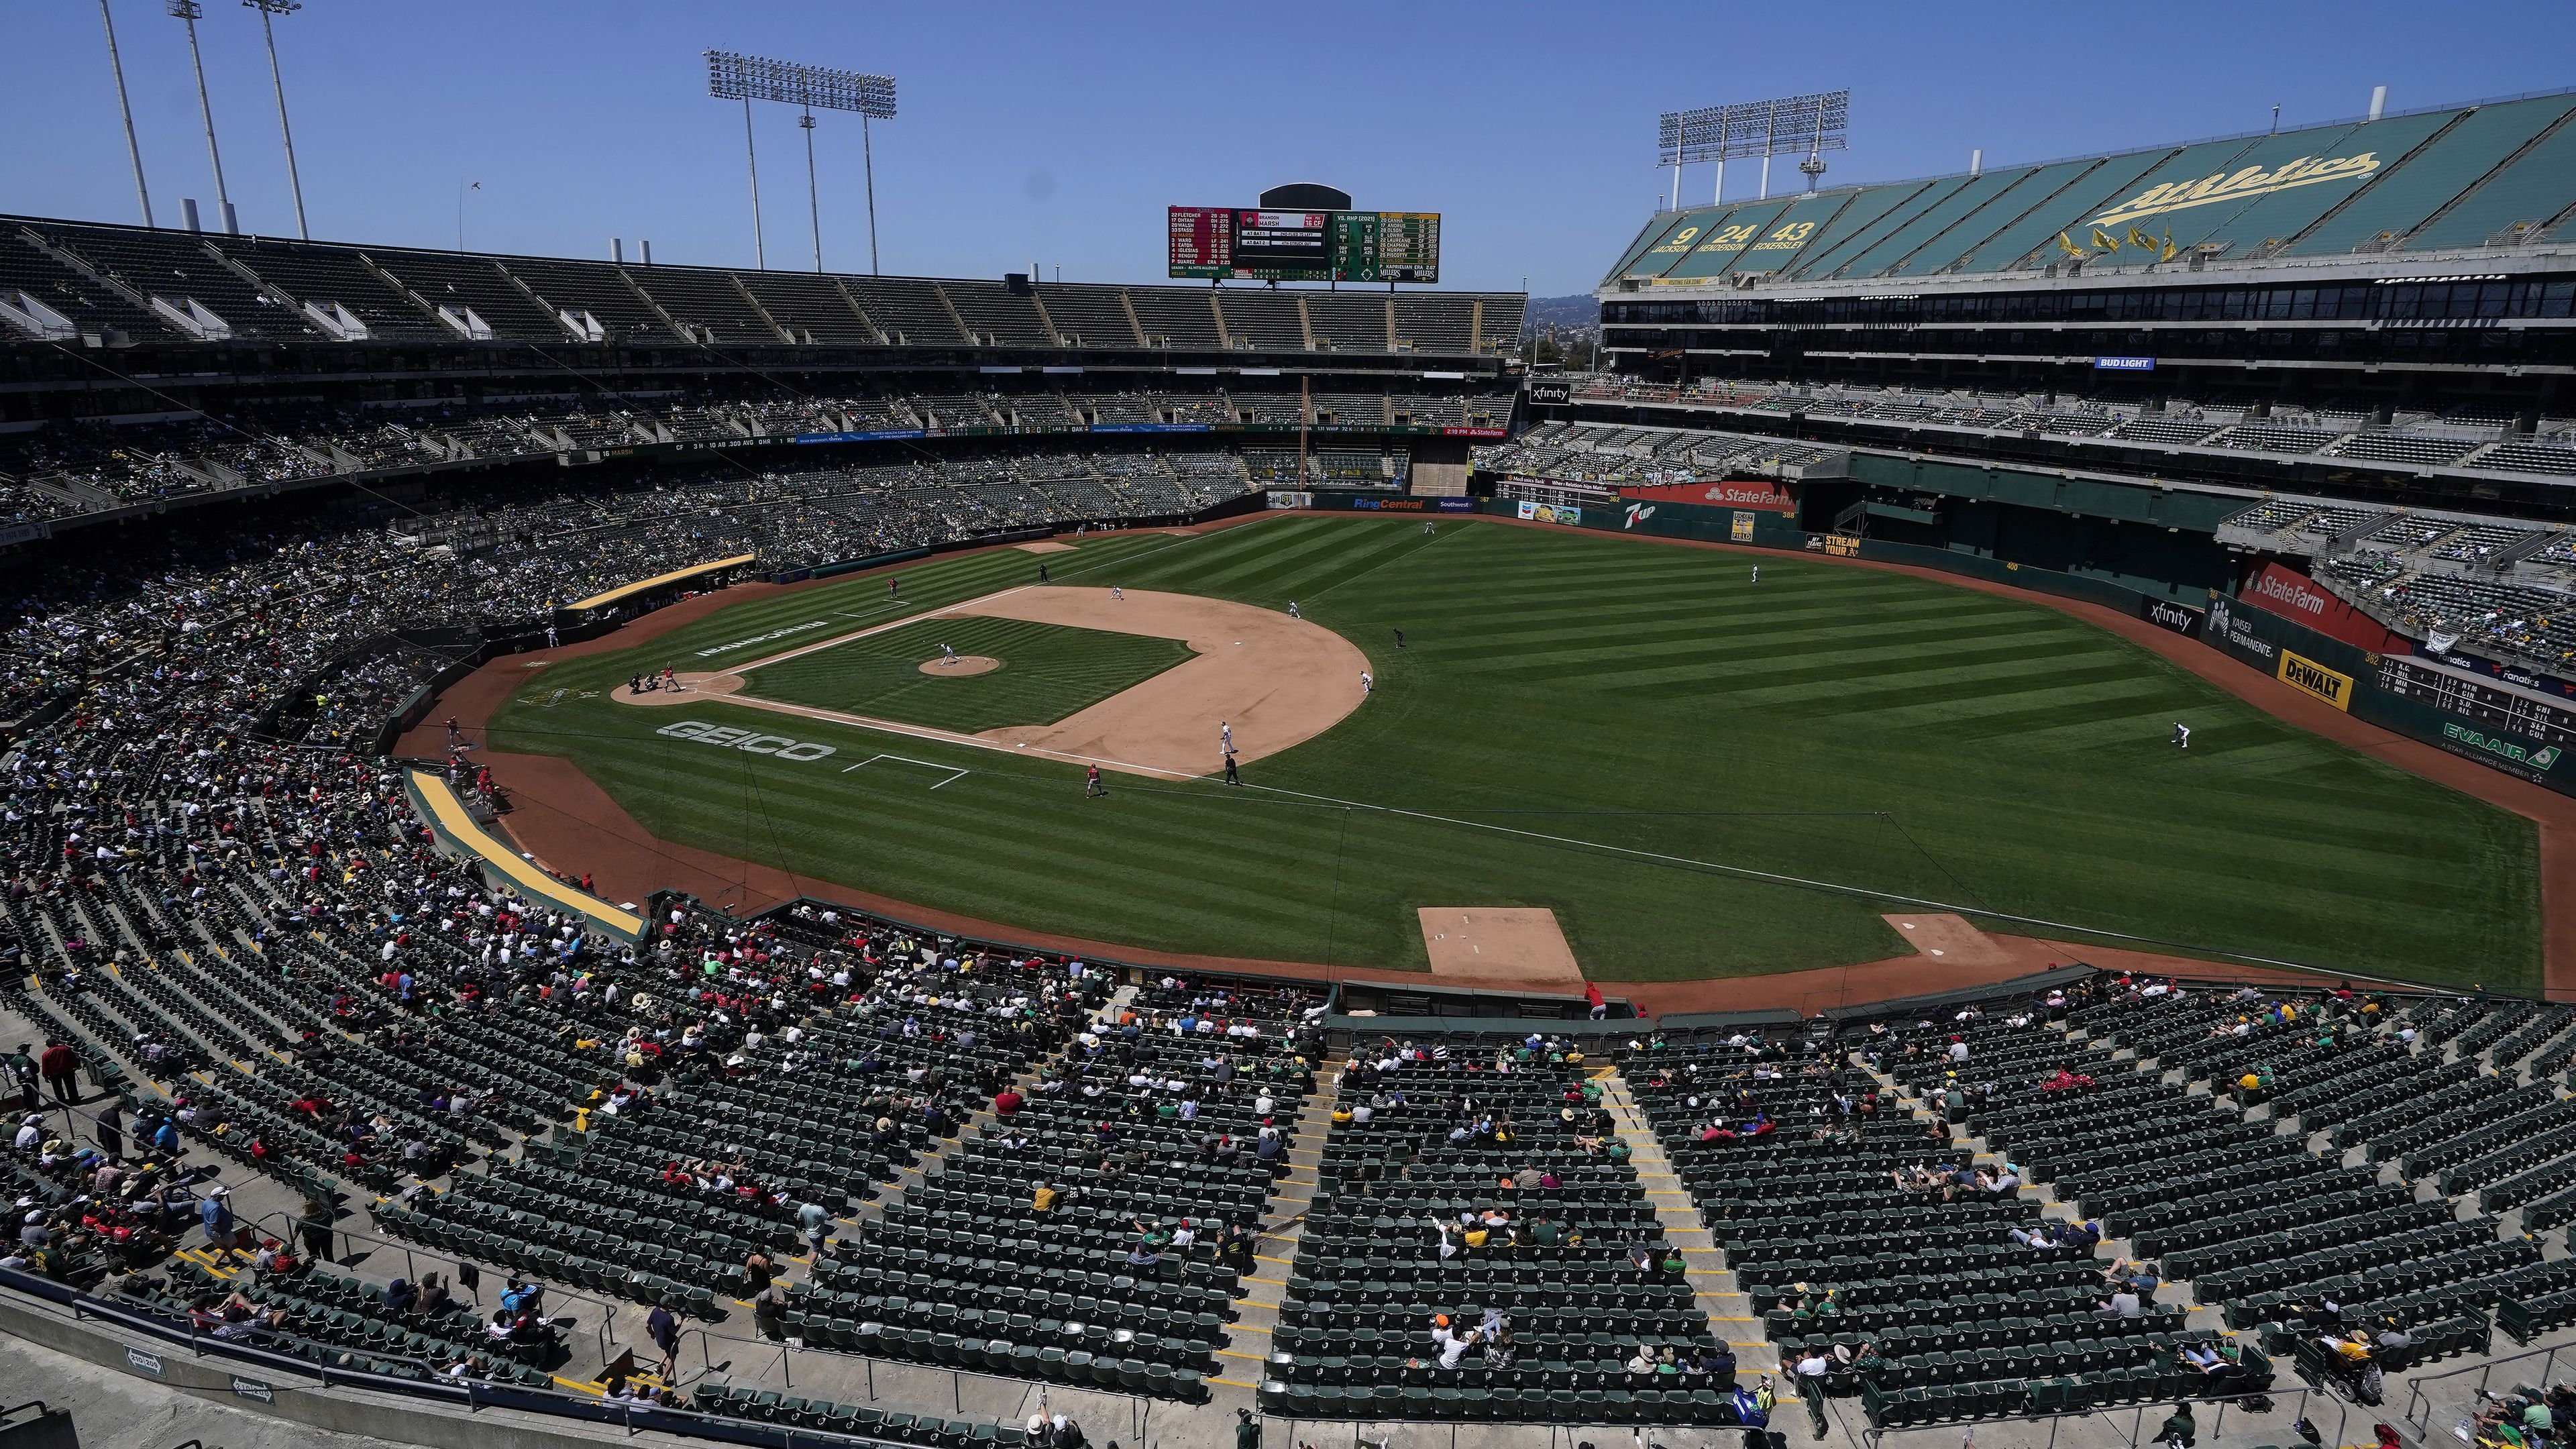 MLB's Oakland As may still quit city despite approval for new $16.4b stadium project